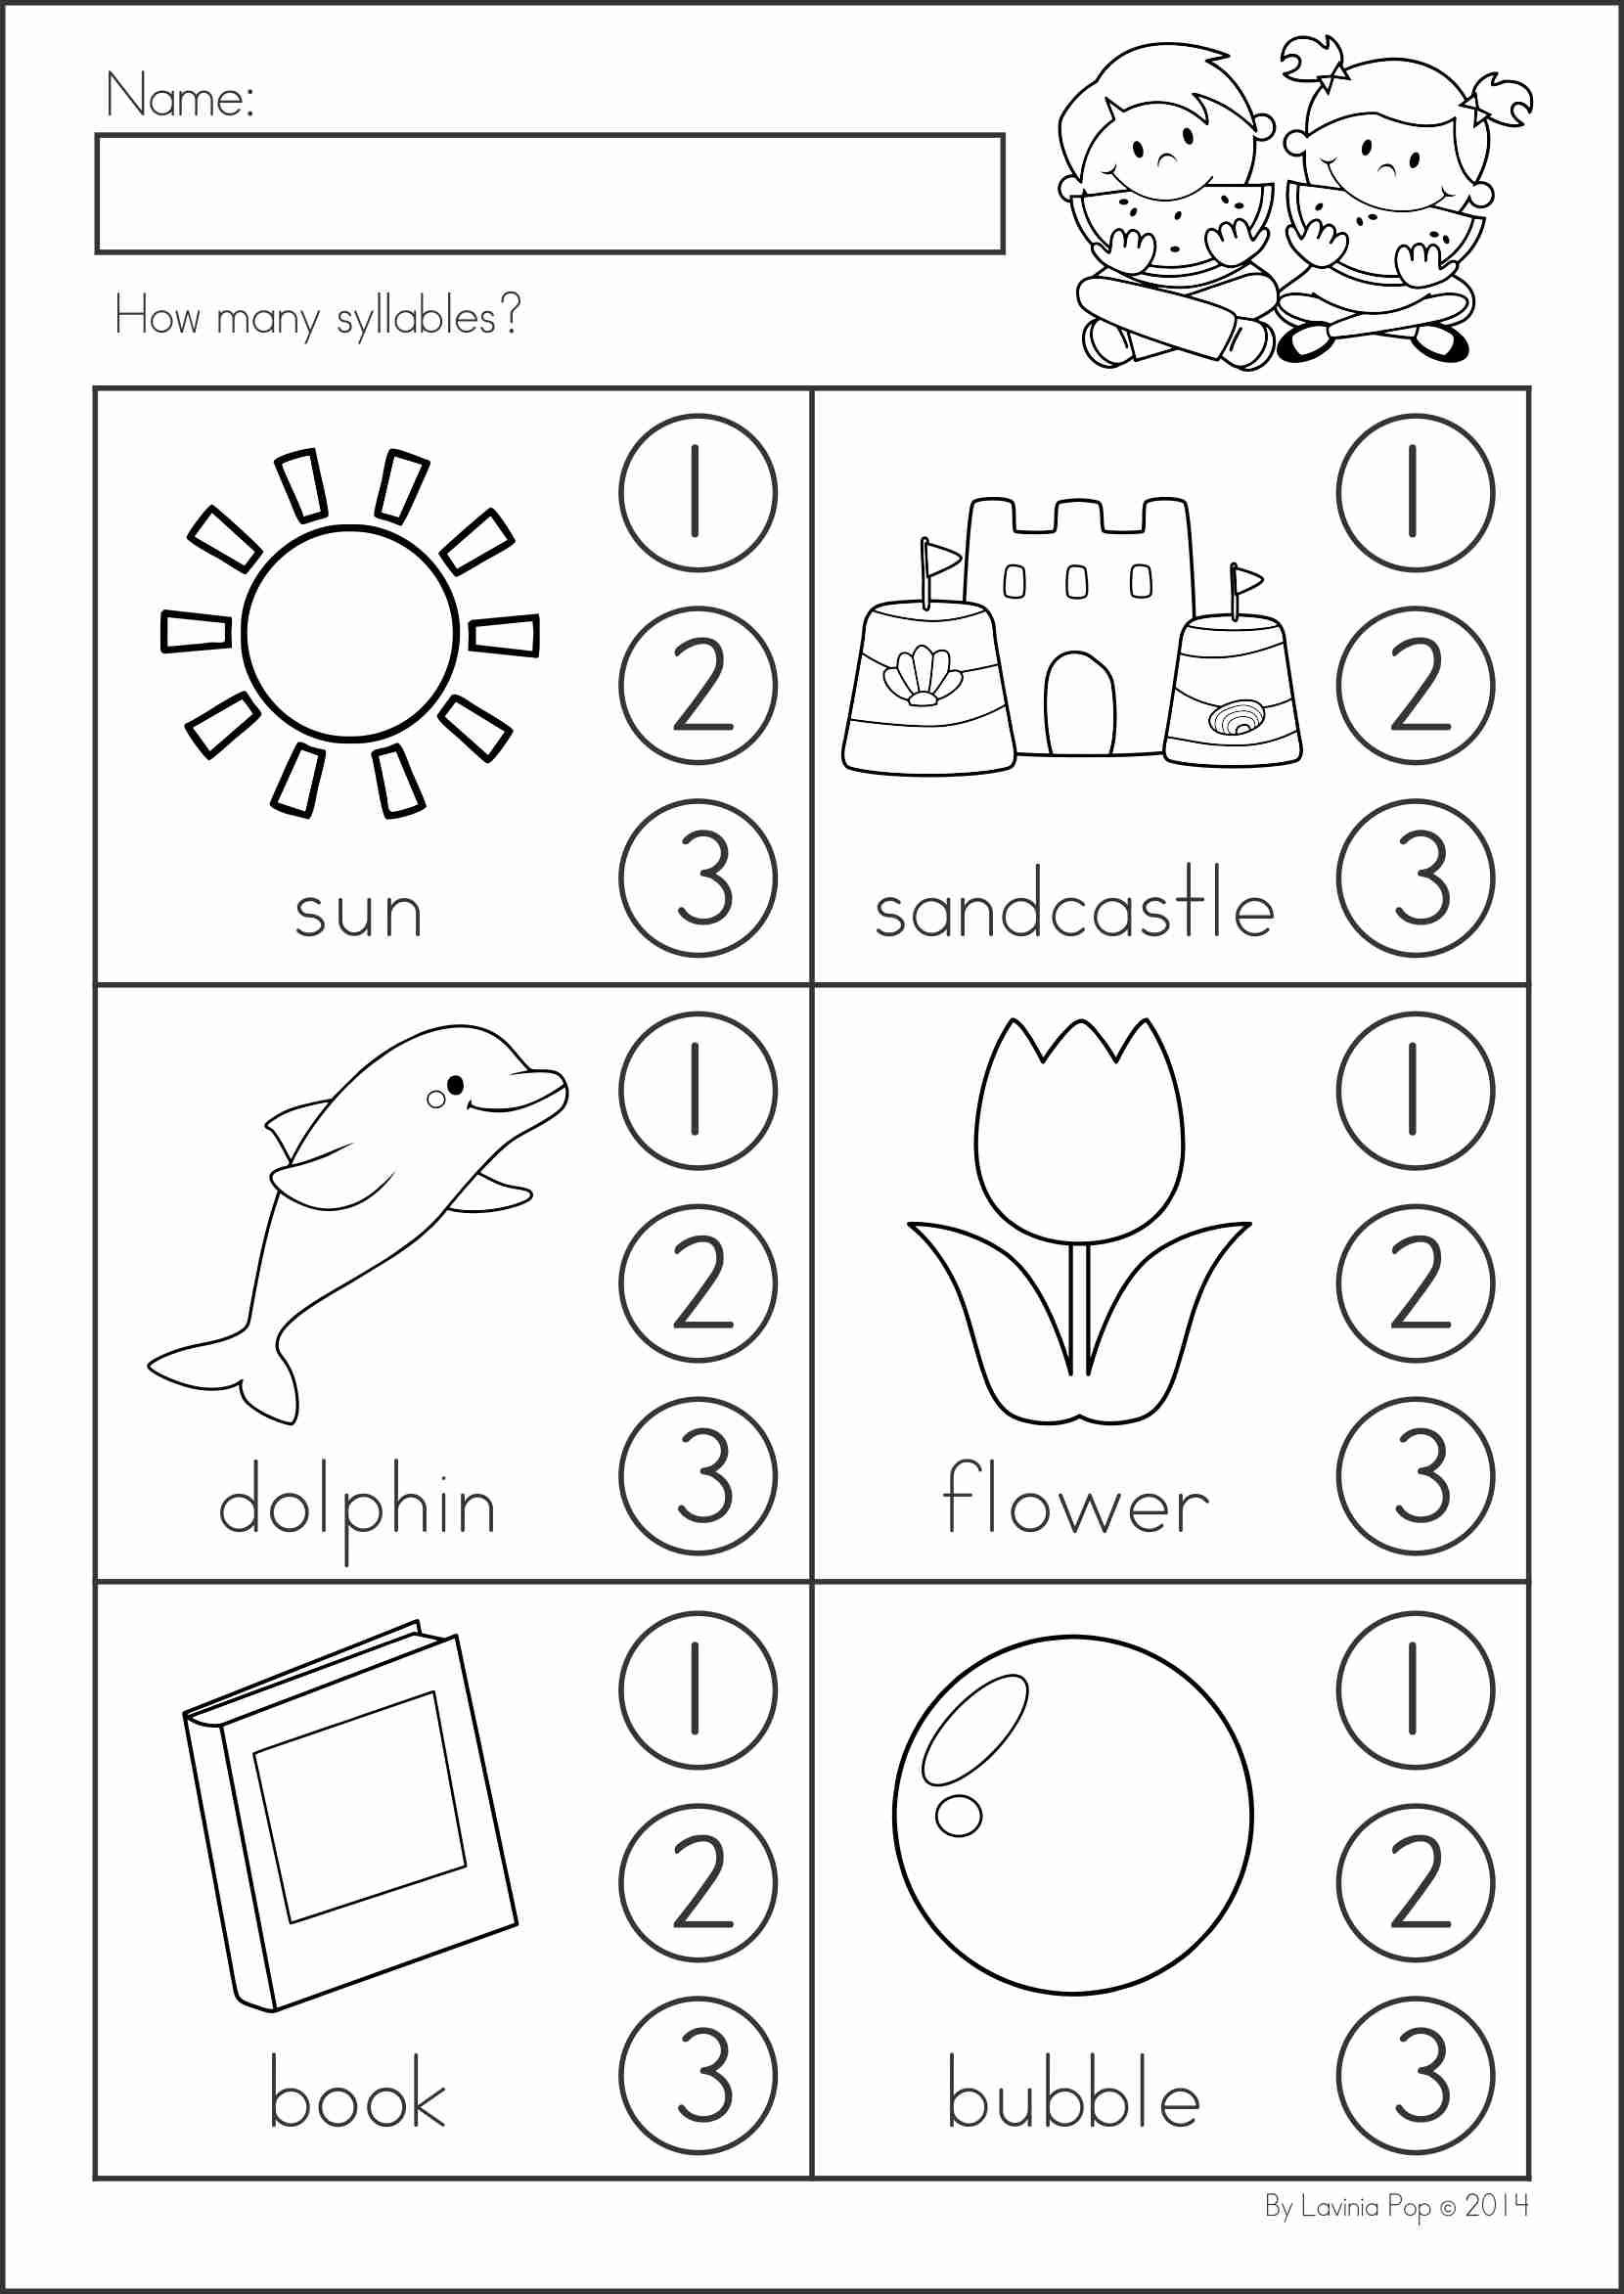 My Country Worksheet For Kindergarten